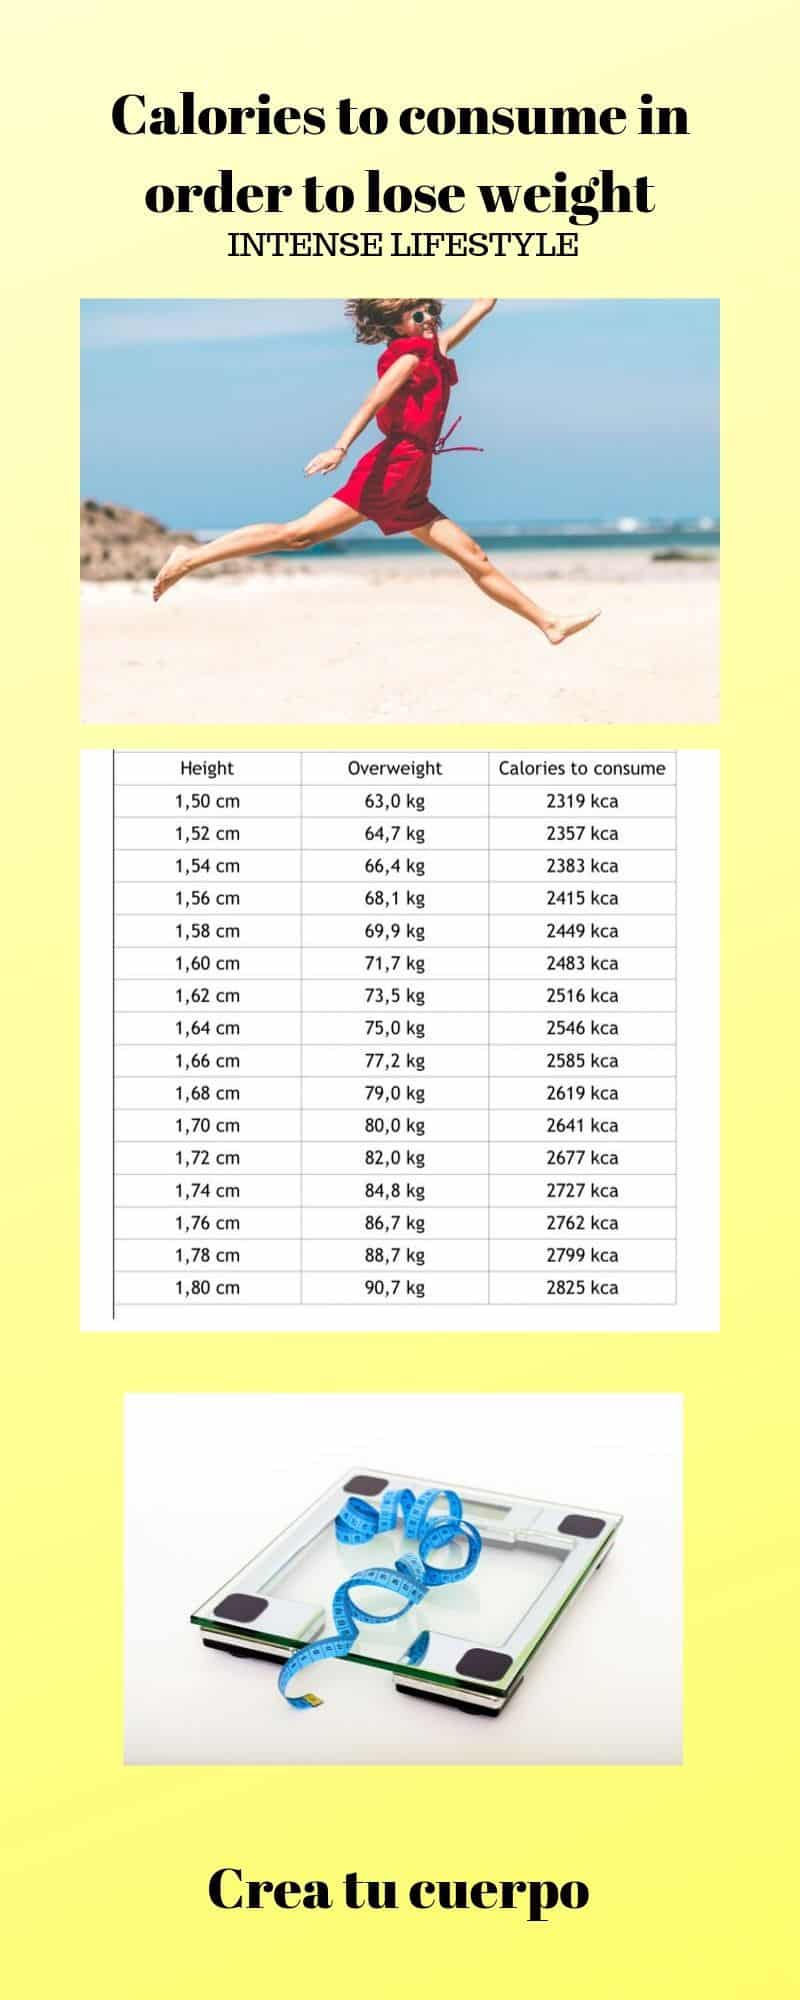 calories to lose in order to lose Weight if you have an intense lifestyle